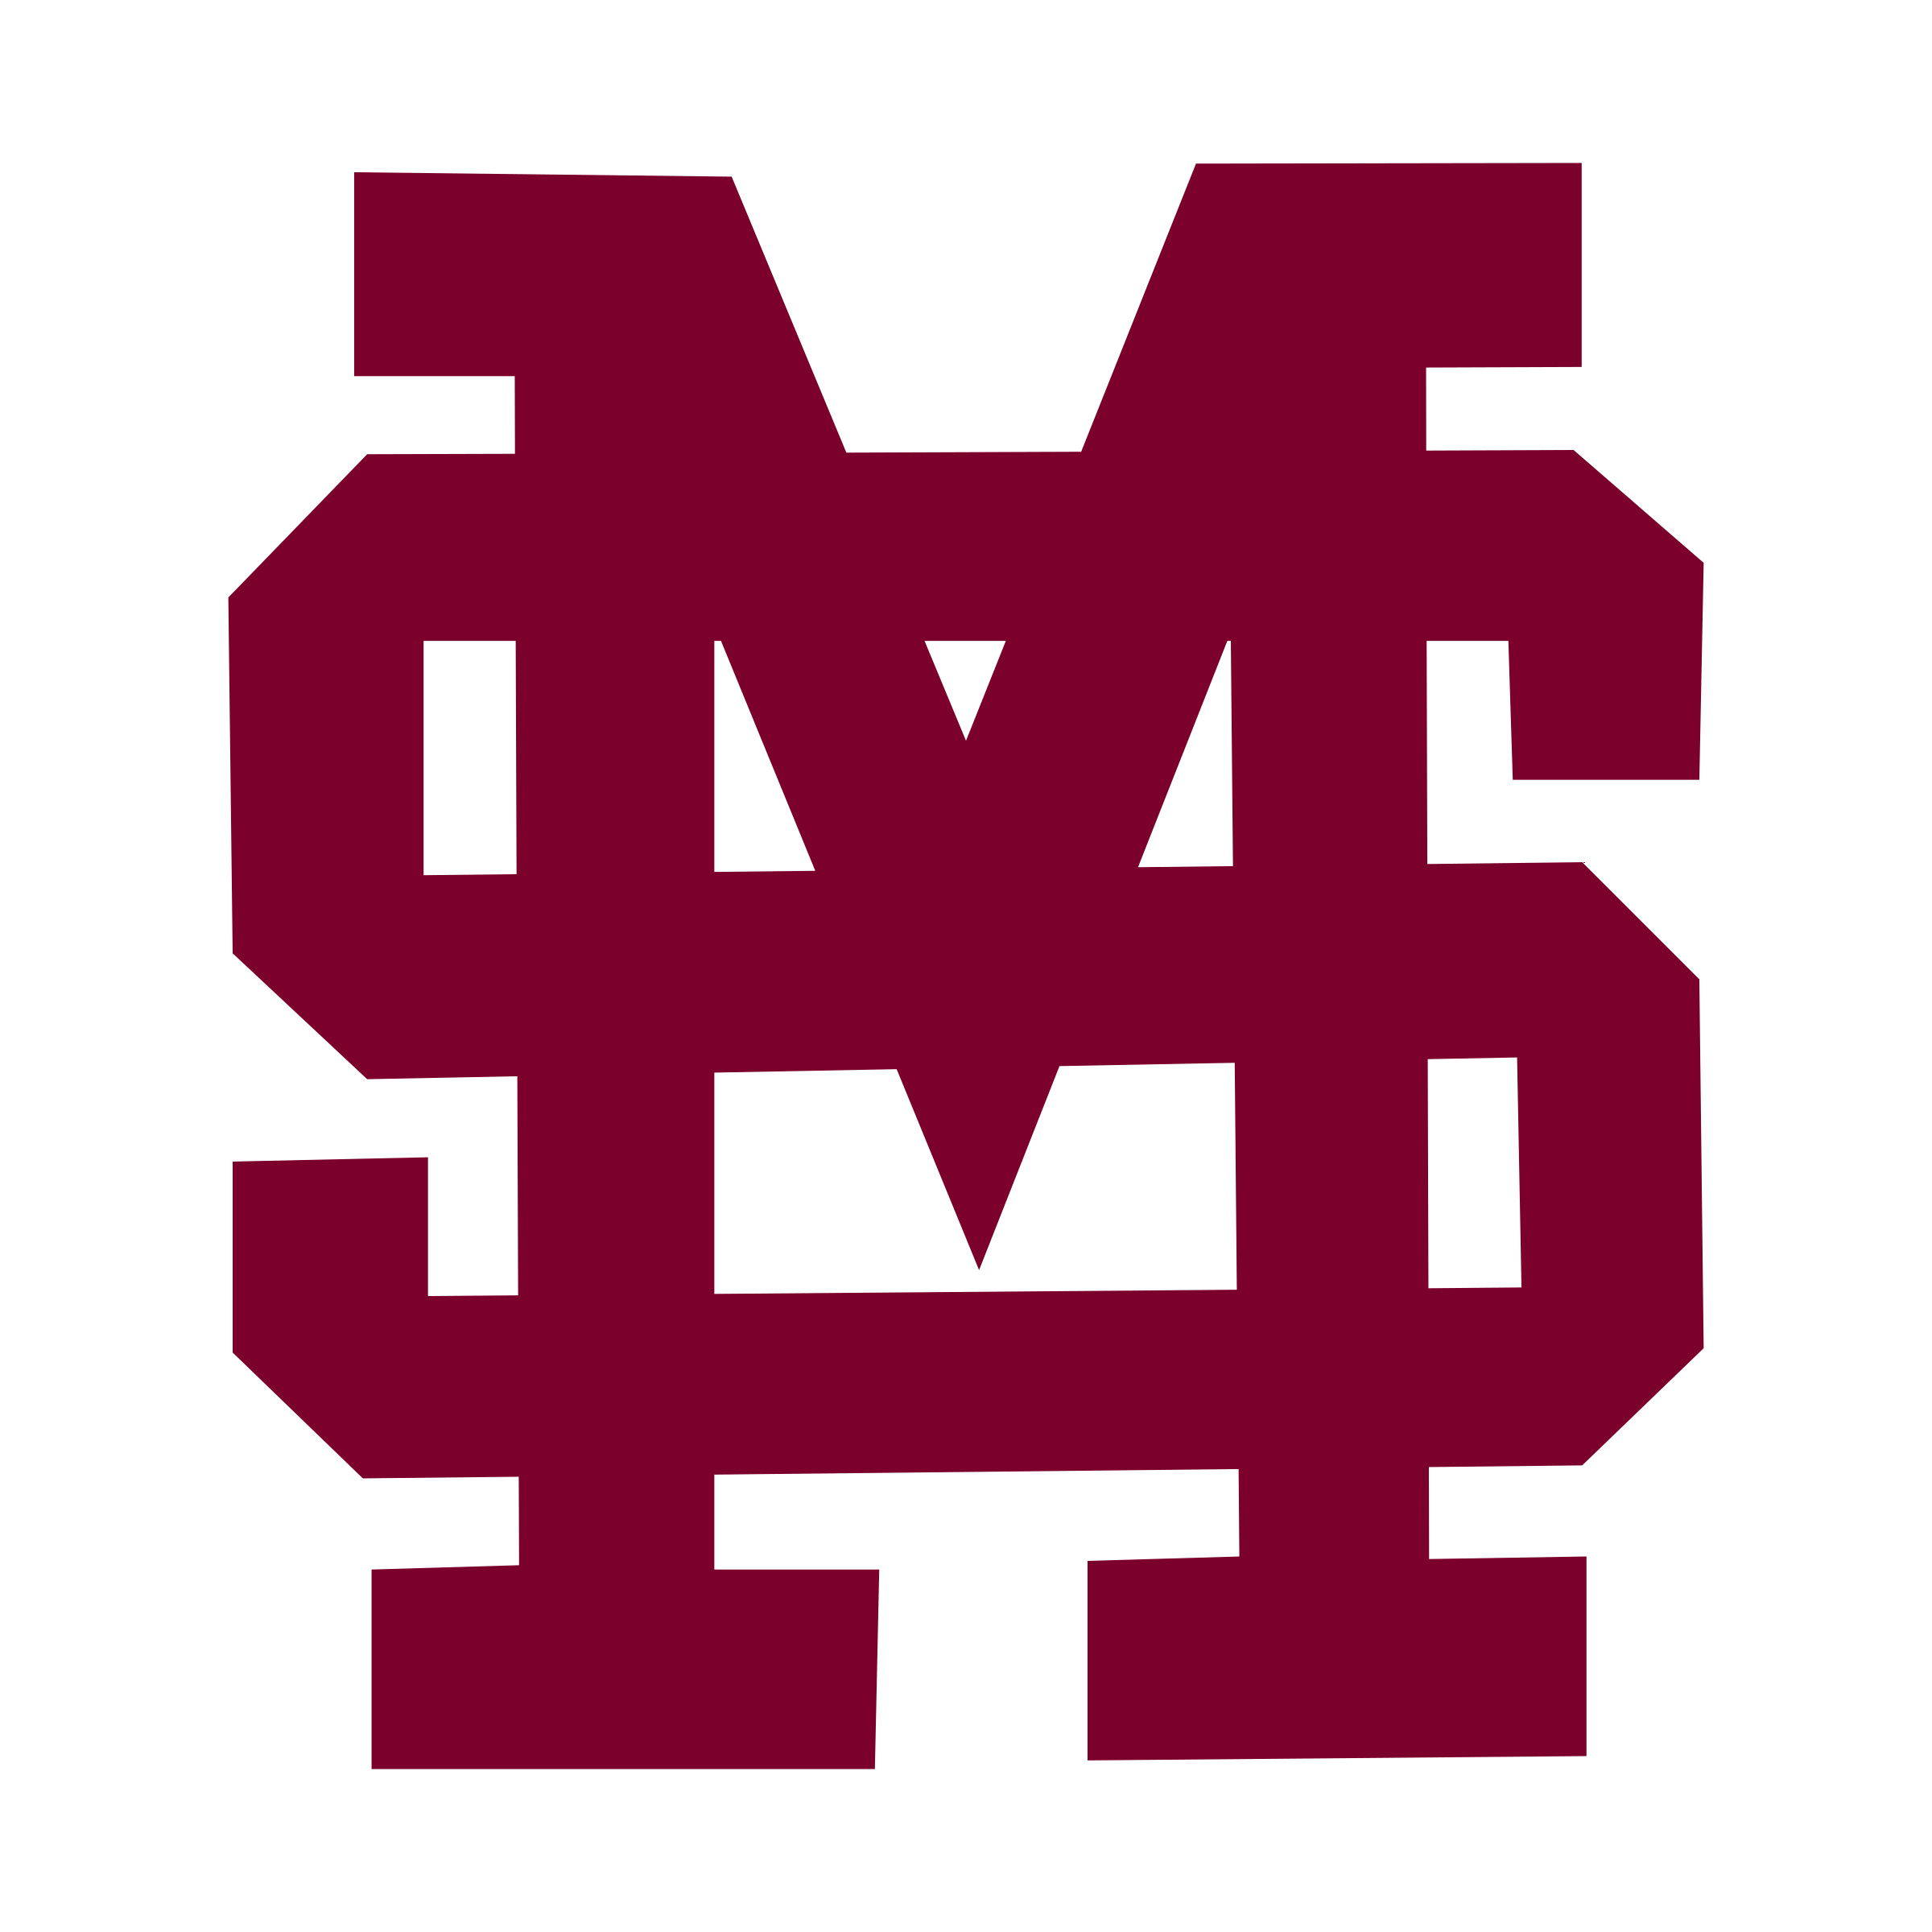 State bulldogs logo png. Mississippi vector png black and white stock